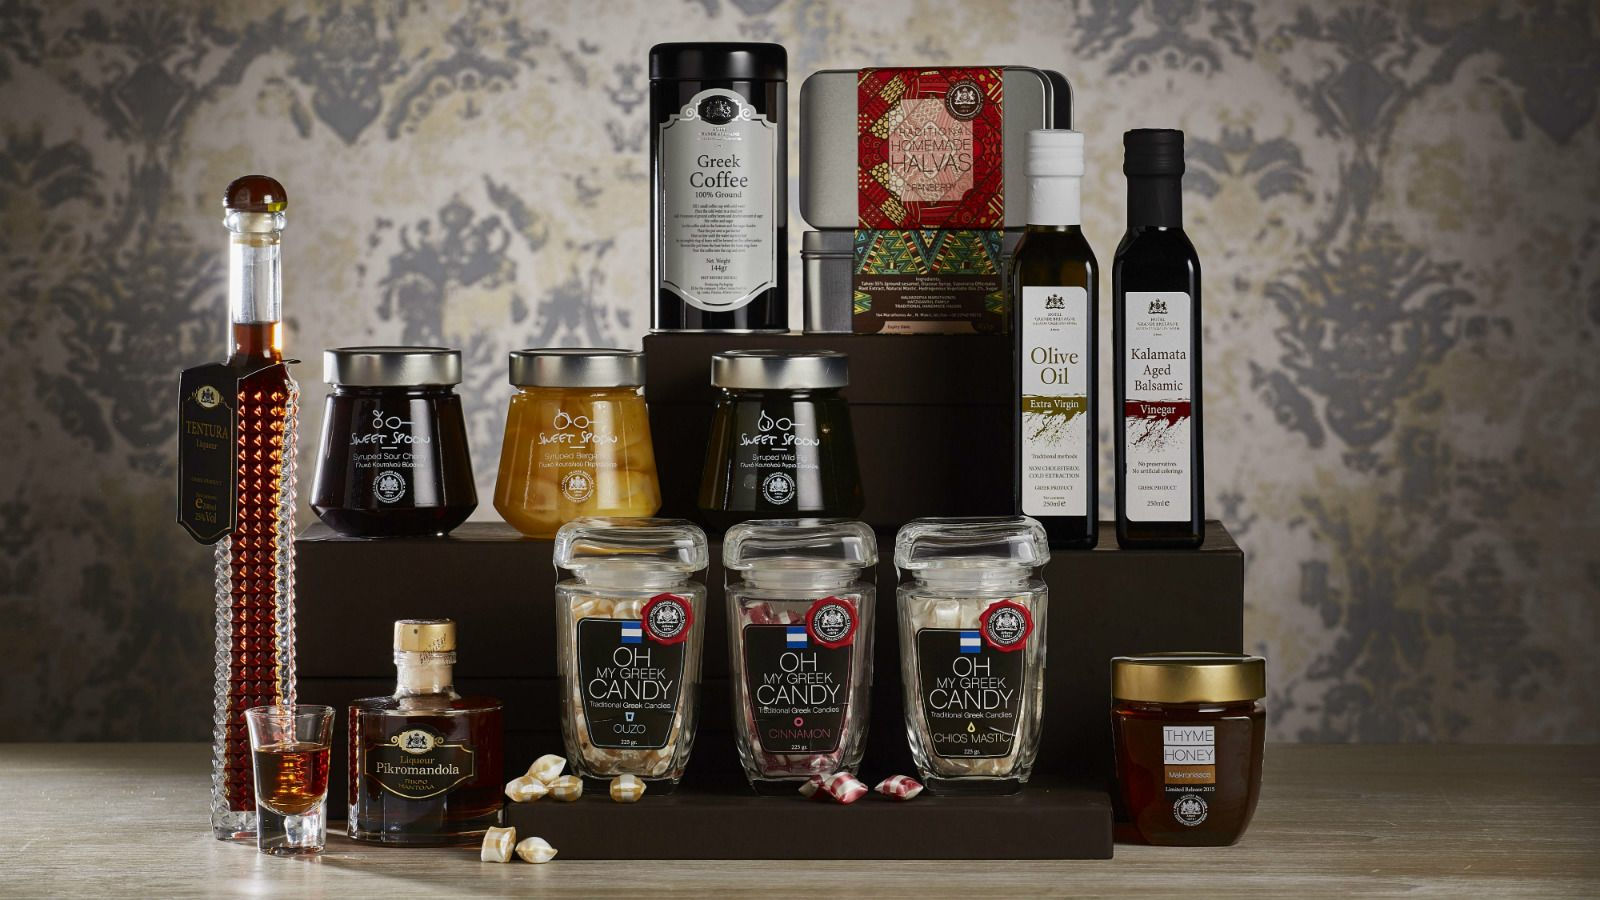 "=""Gift-Hamper-Traditional-GB-Corner-Gifts-Flavors-in-Athens-at-Hotel-Grande-Bretagne""/"